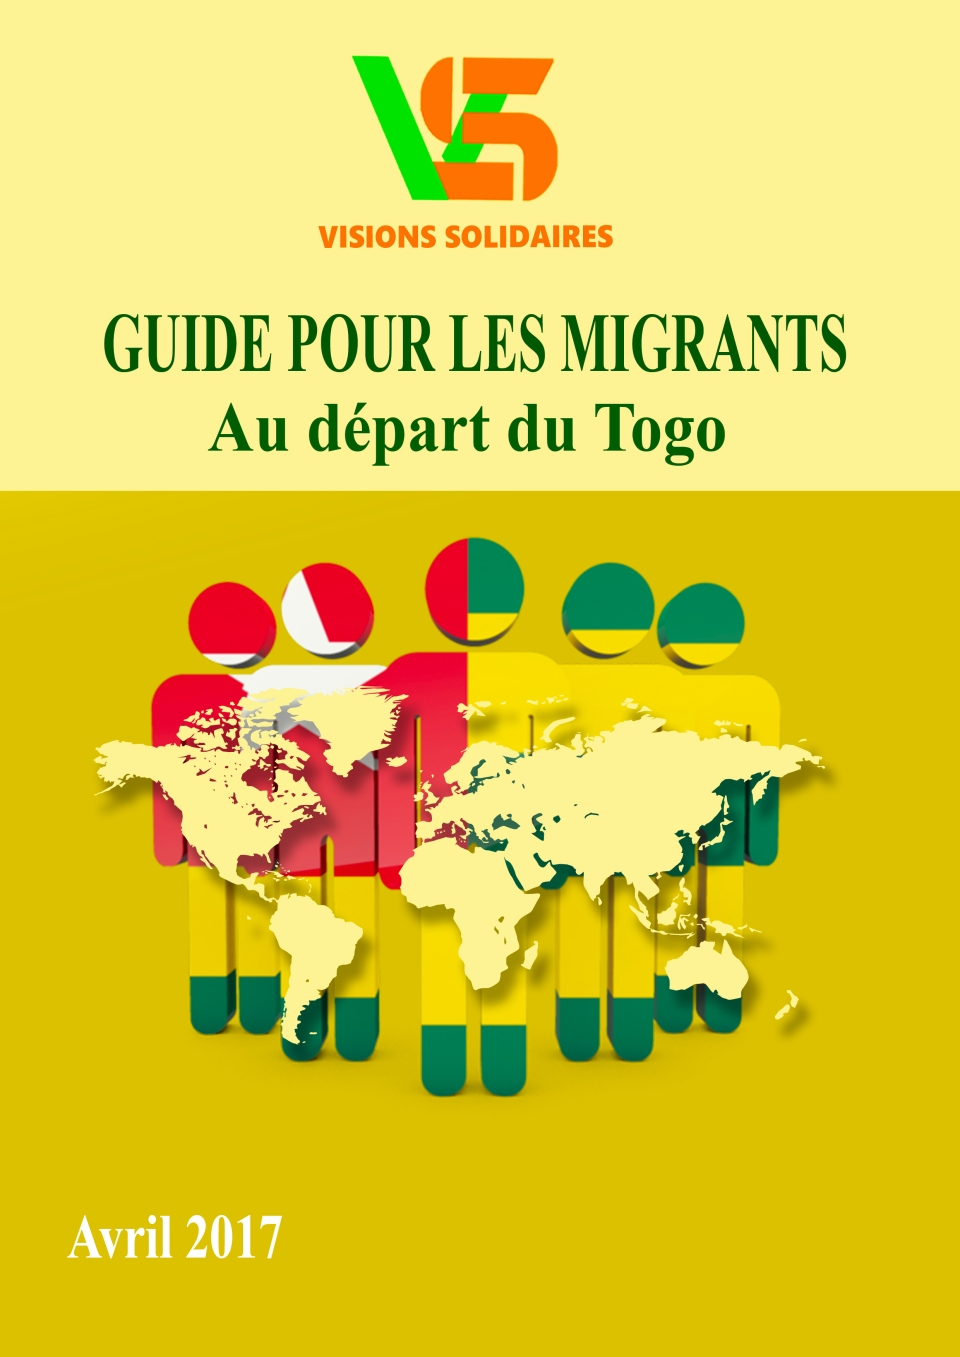 GUIDE DES MIGRANTS